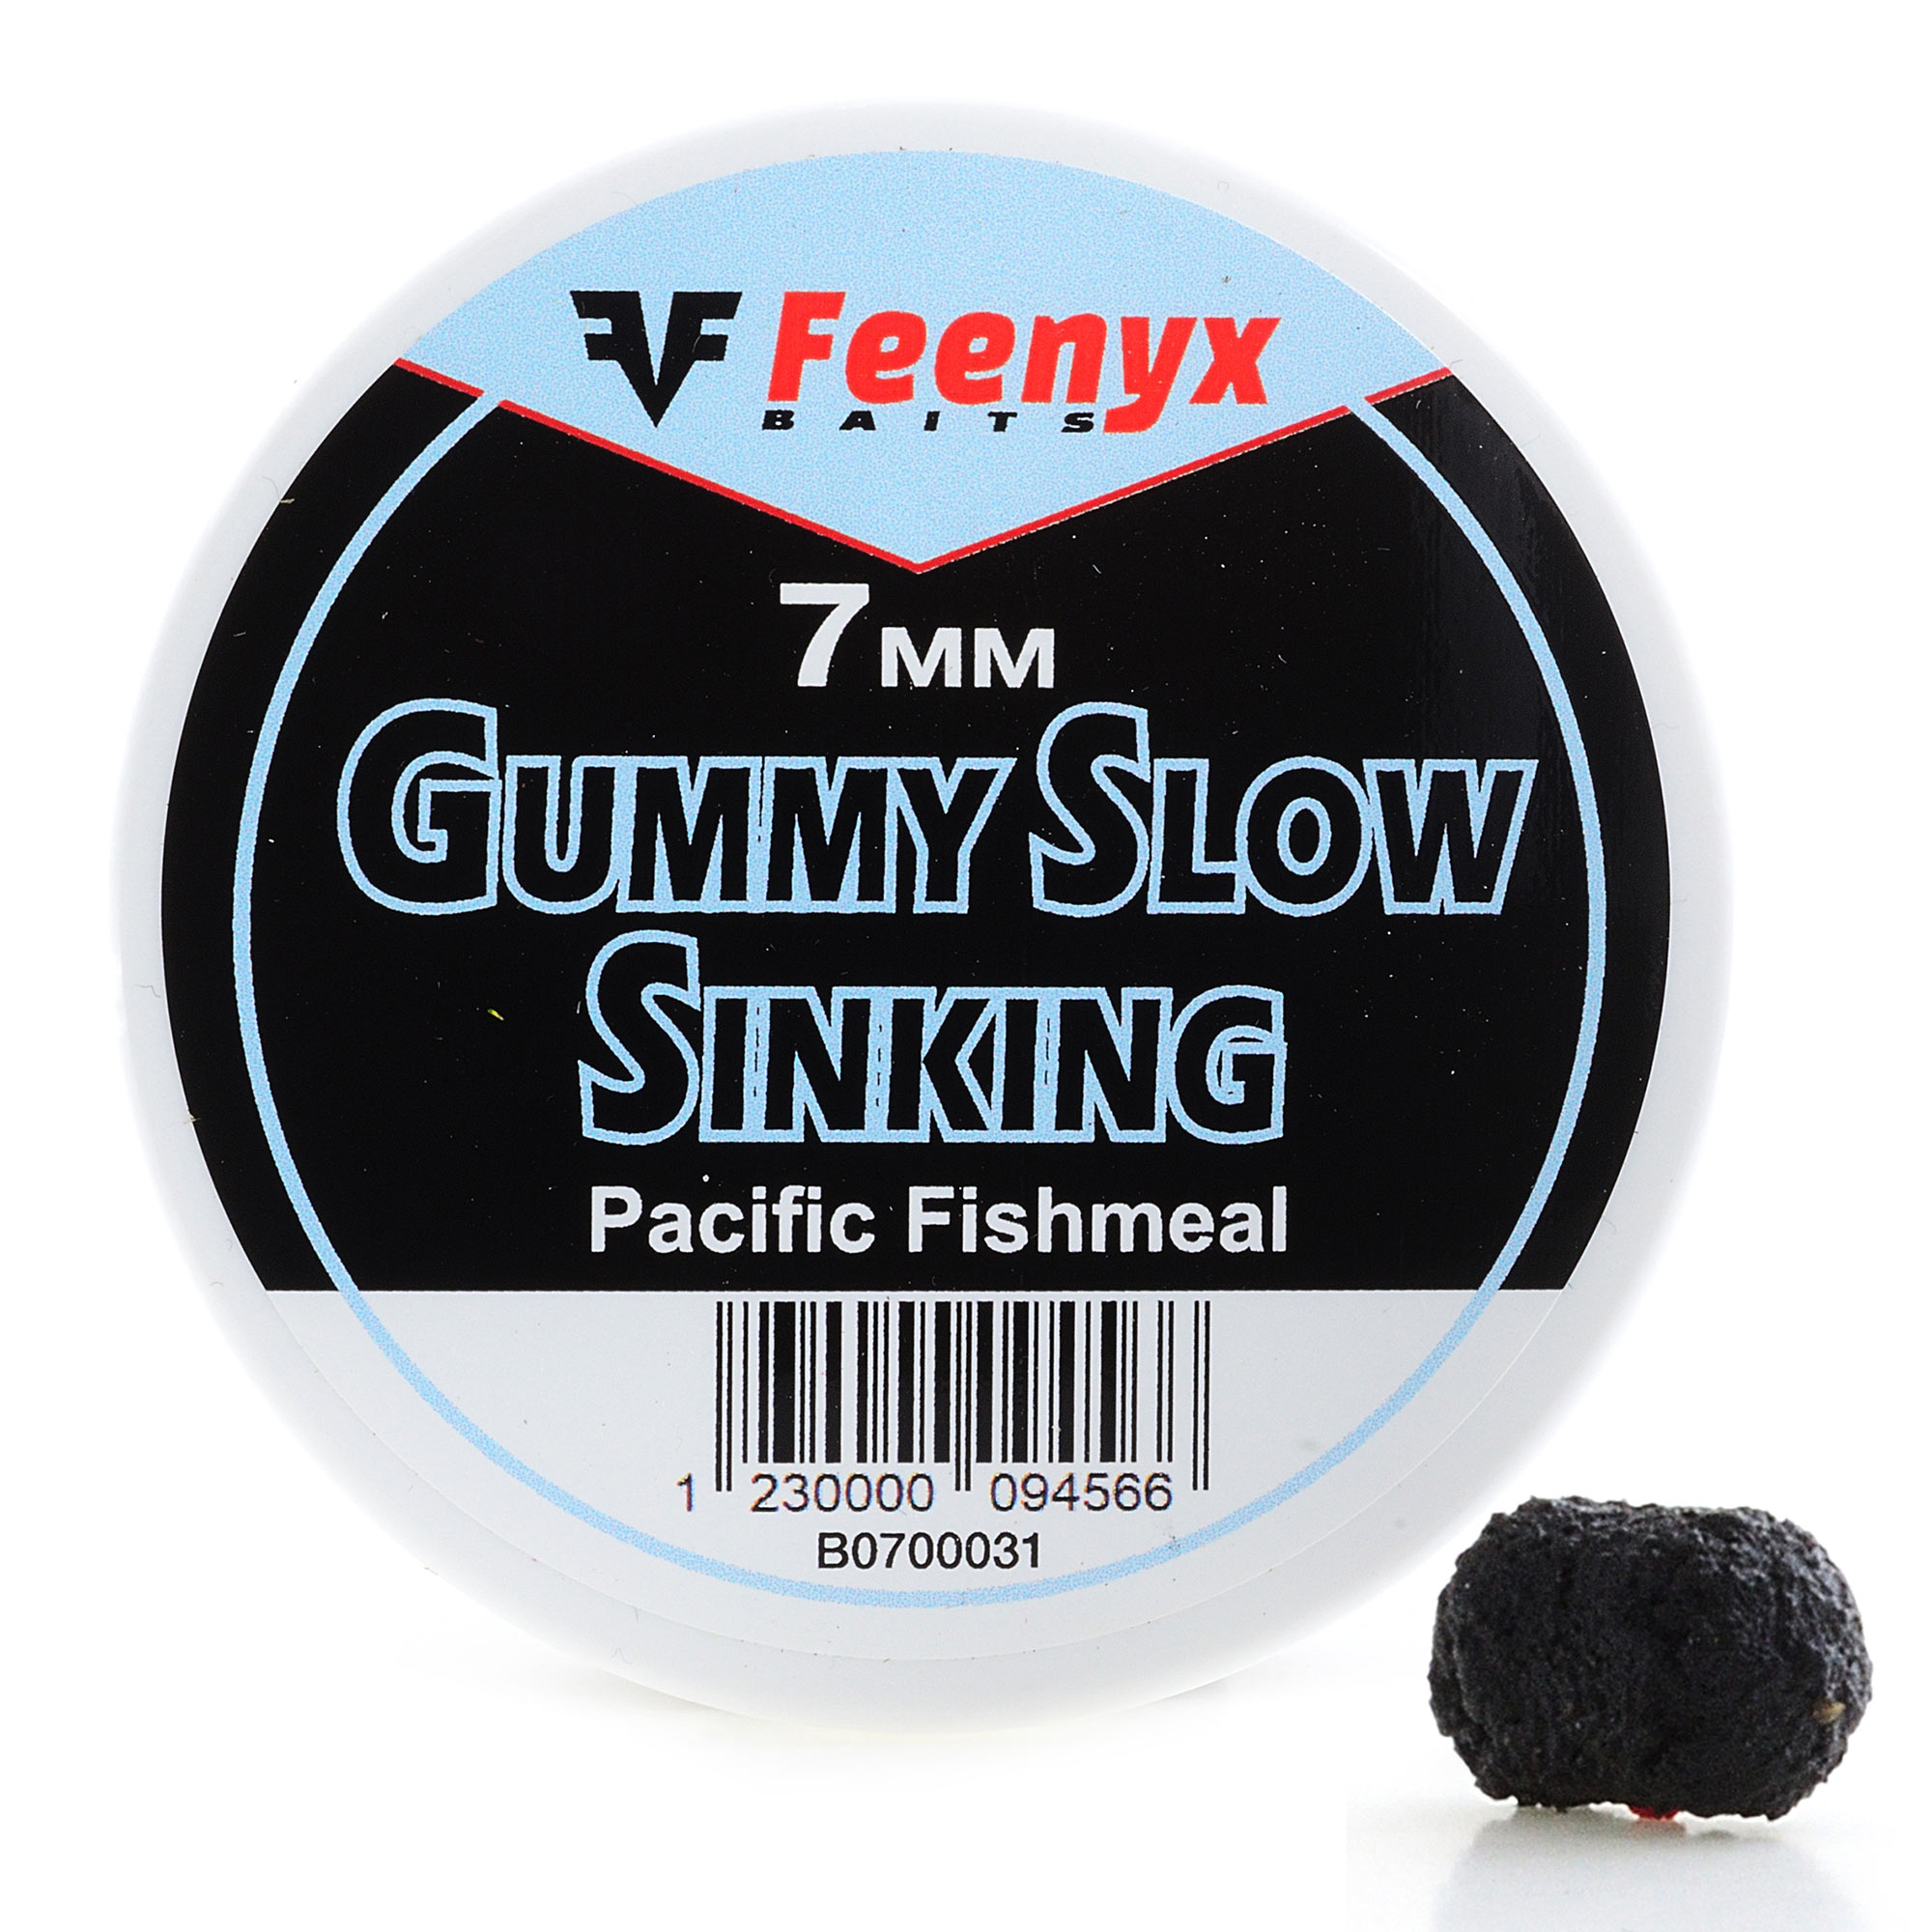 Gummy Slow Sinking Pacific Fishmeal 7mm FEENYX BAIT